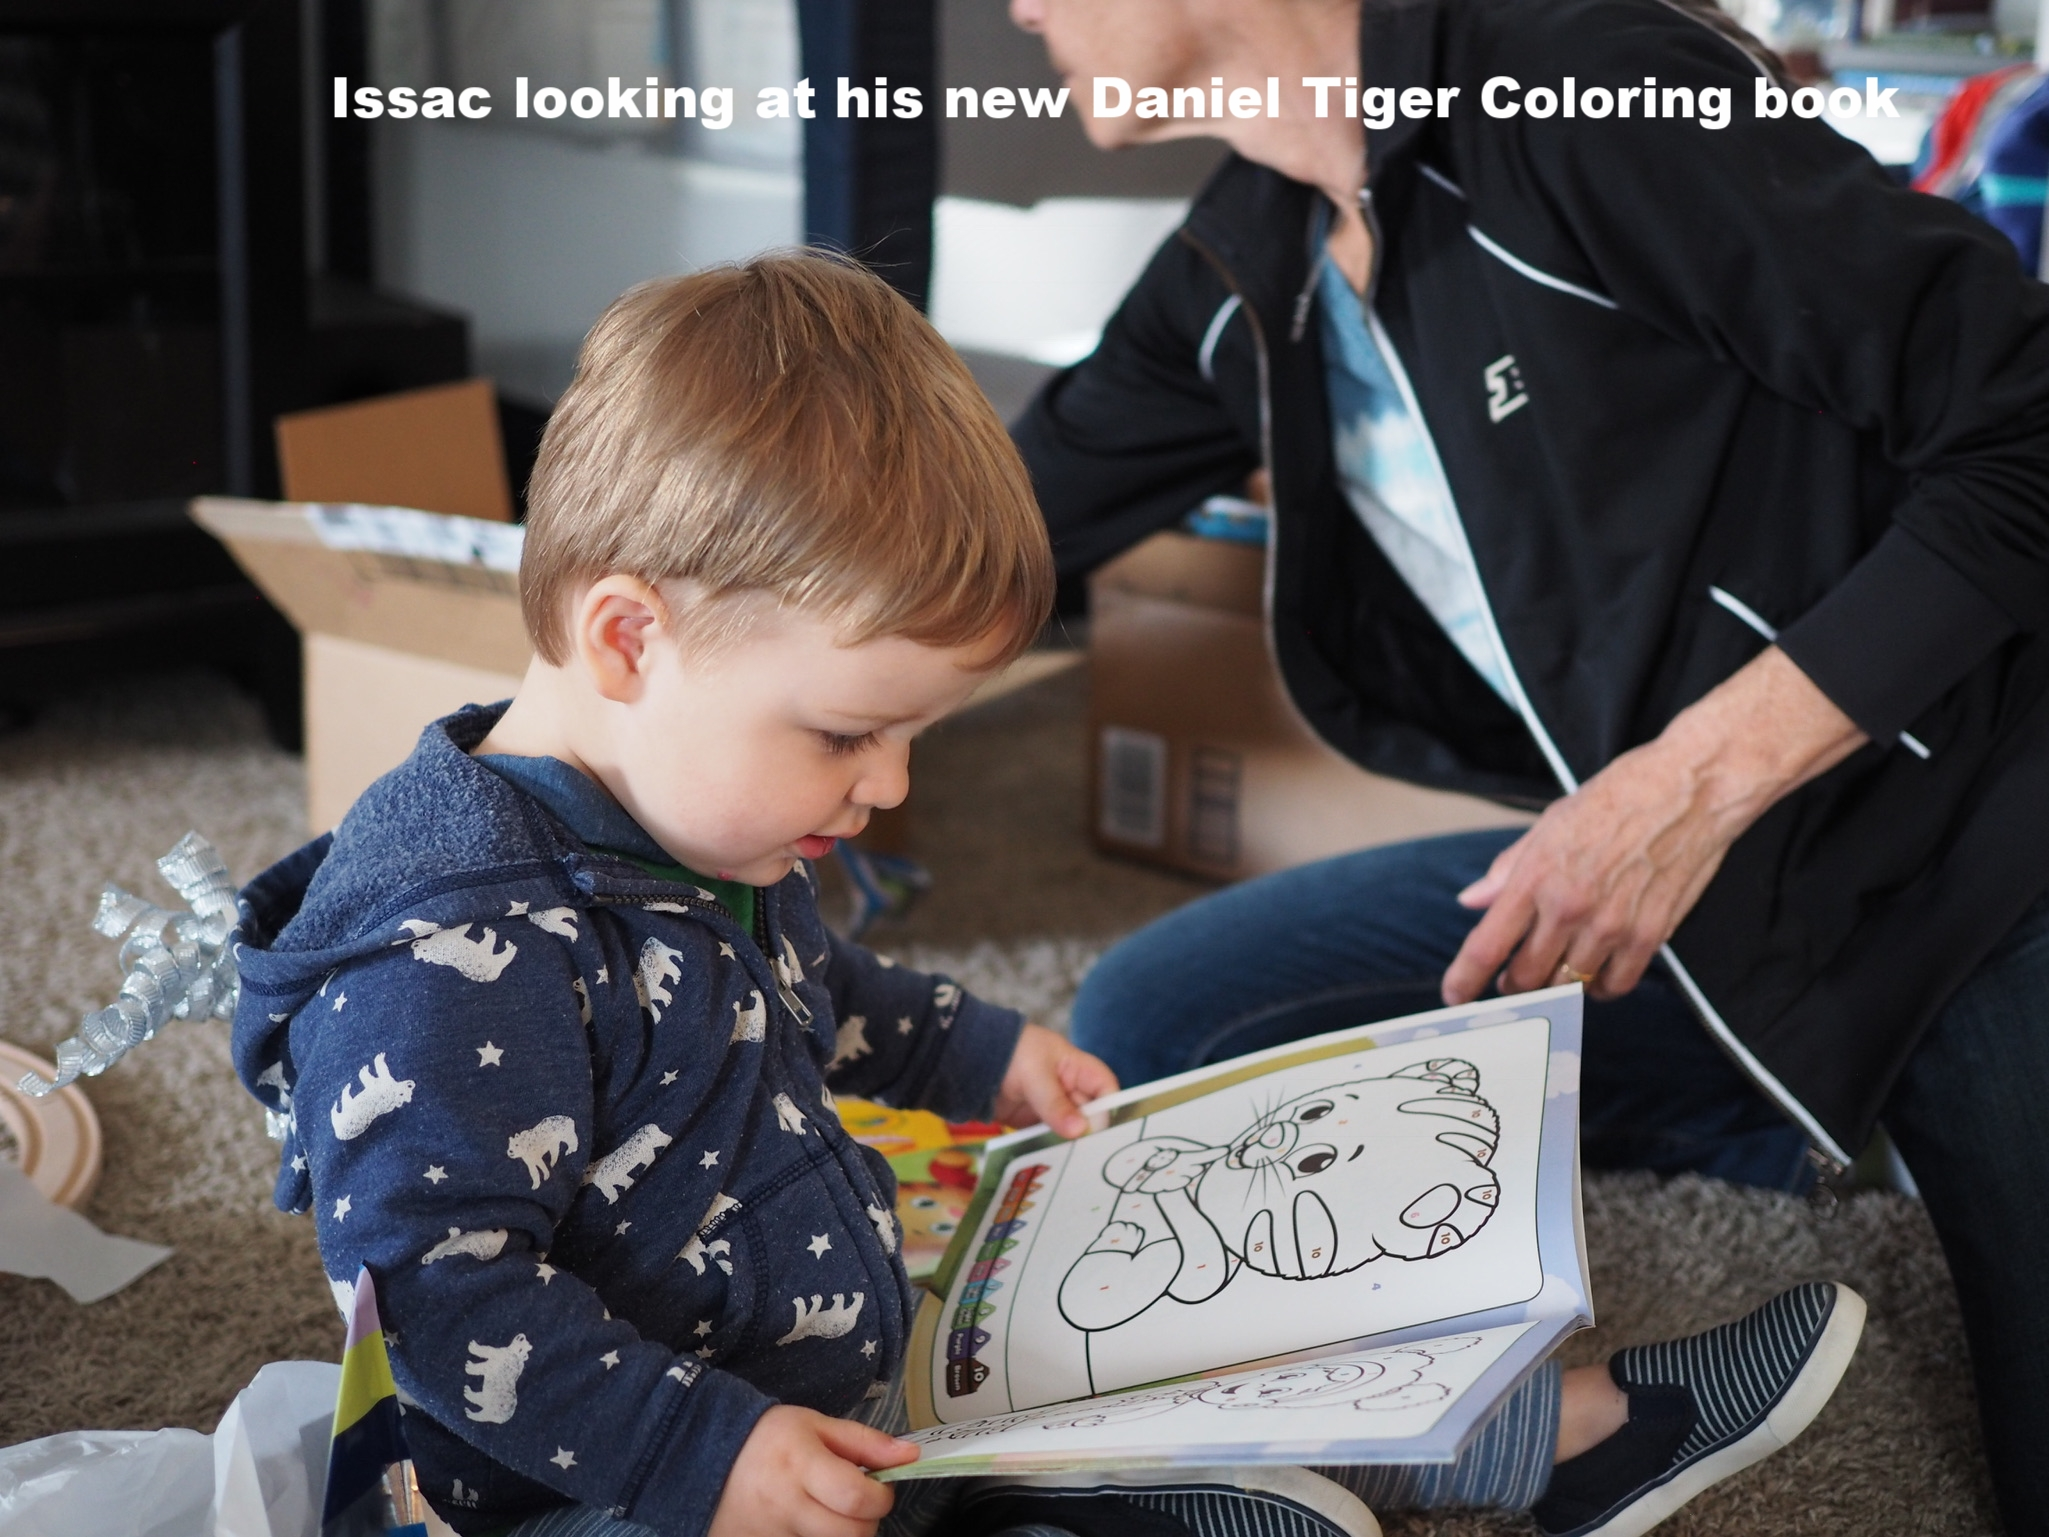 Isaac enjoying his new Daniel Tiger coloring book